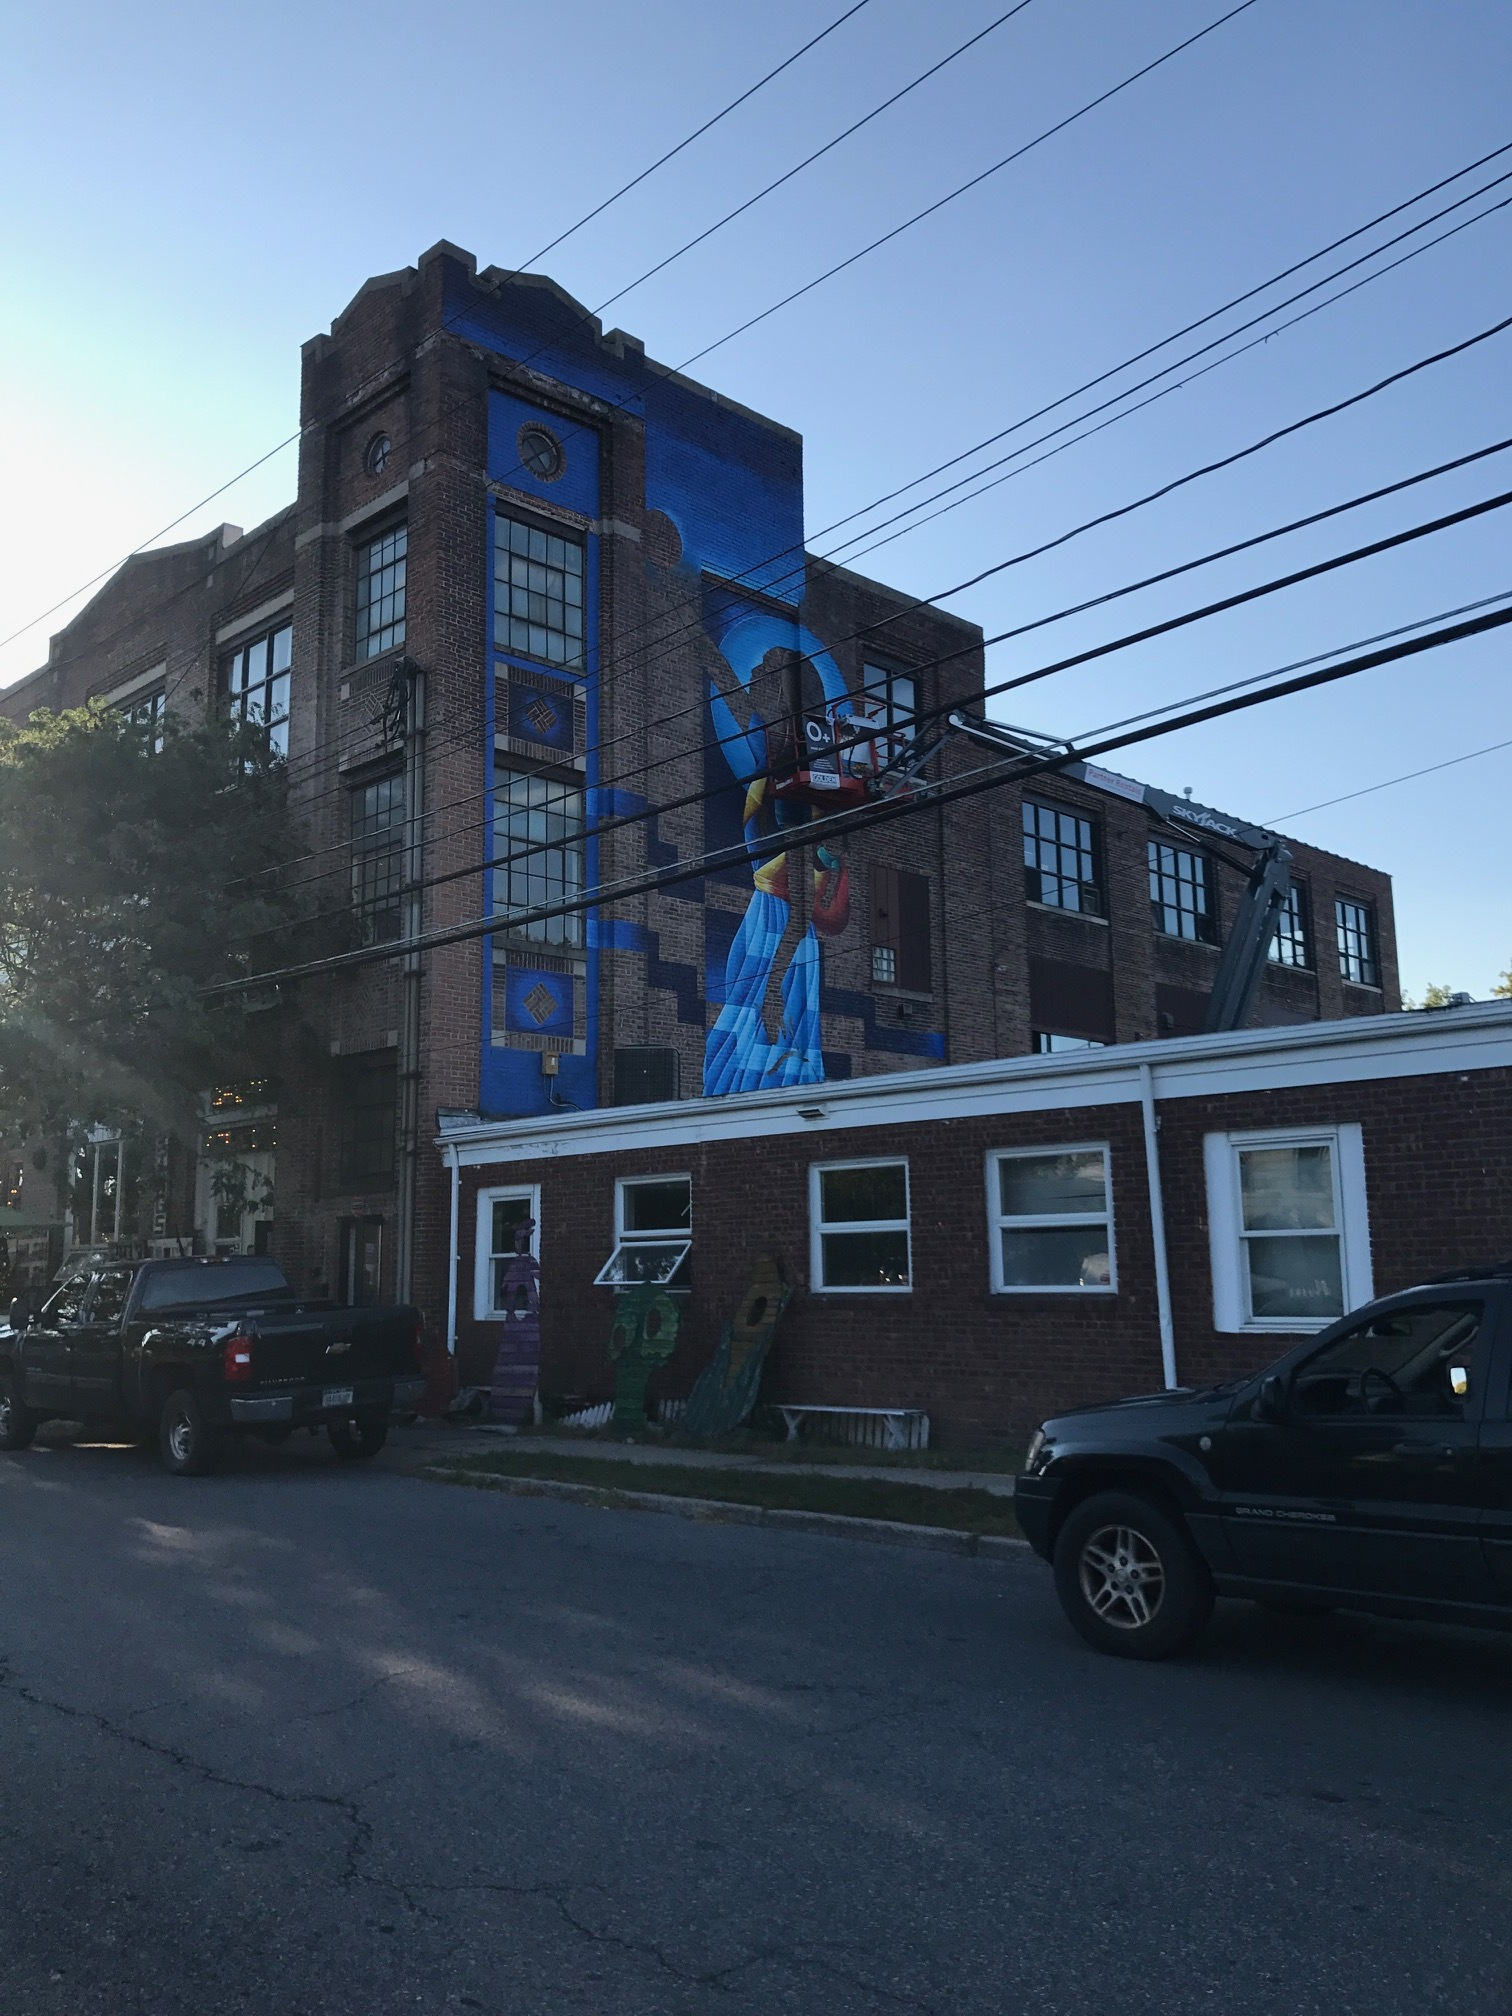 Nani Chacon mural in progress_one_9.27.2017.JPG